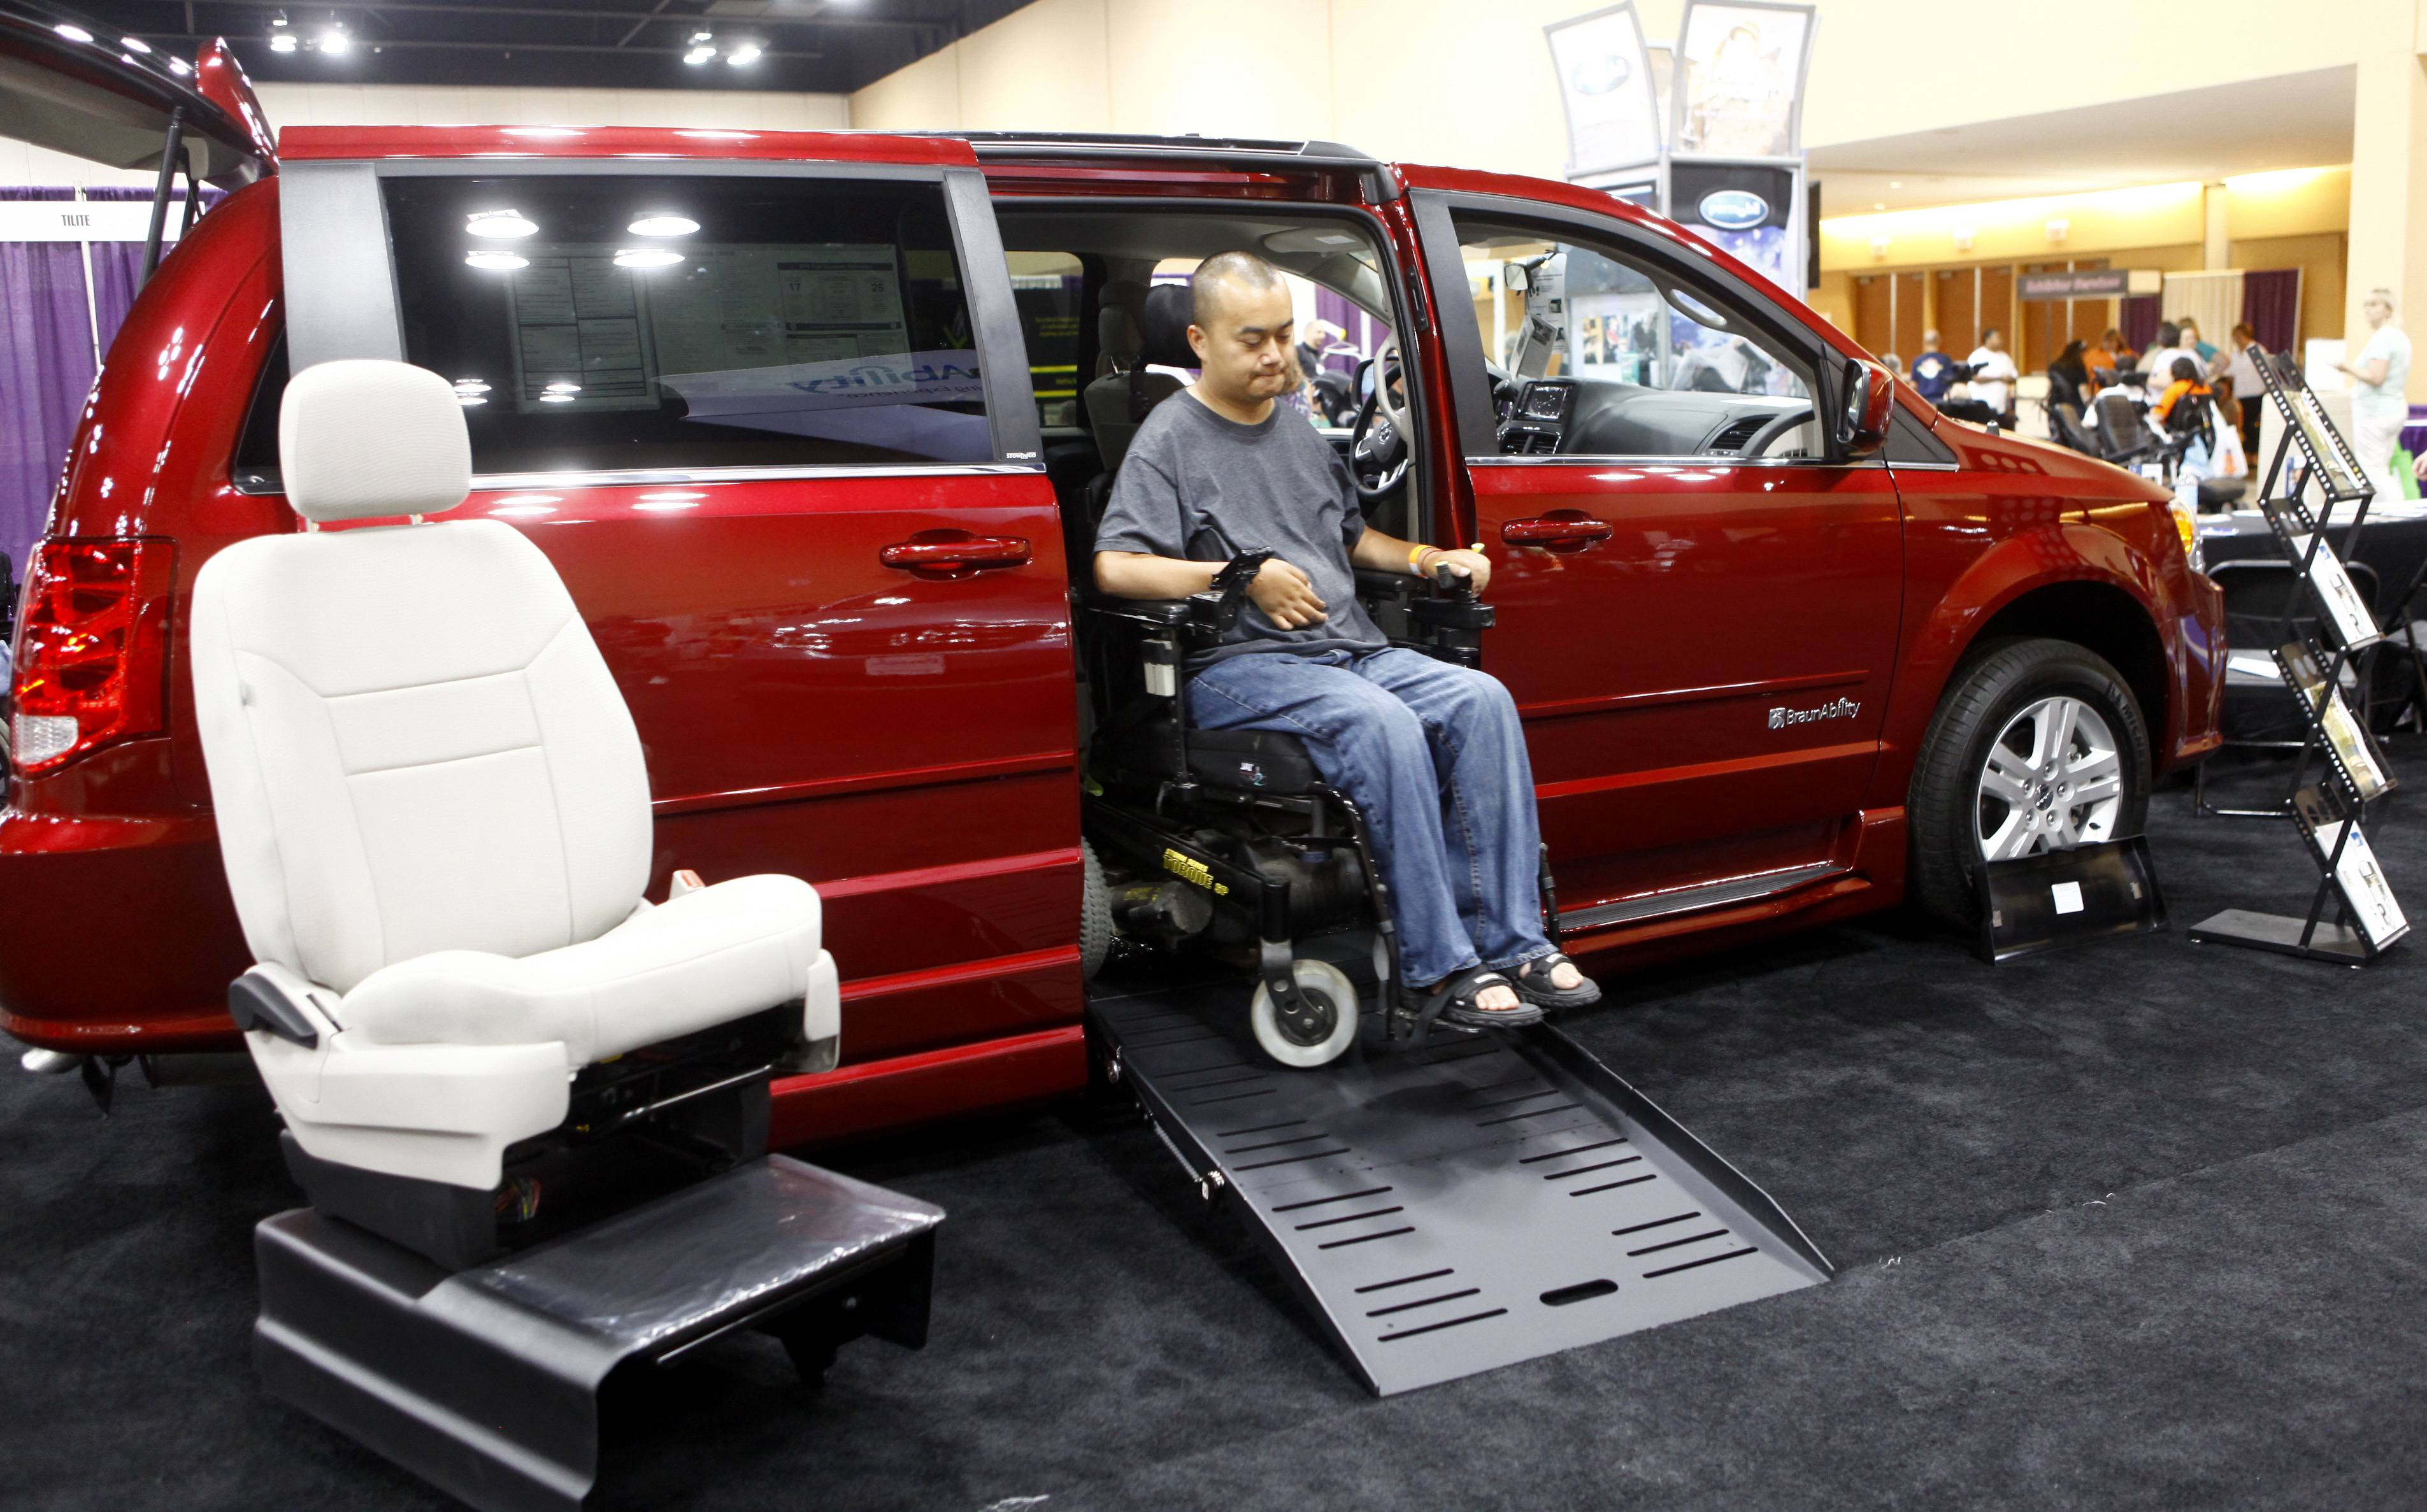 Blong Moua, from Madison, Wis., tries out one of the many wheelchair accessible vans that were on display at the 2011 Abilities Expo in Schaumburg.